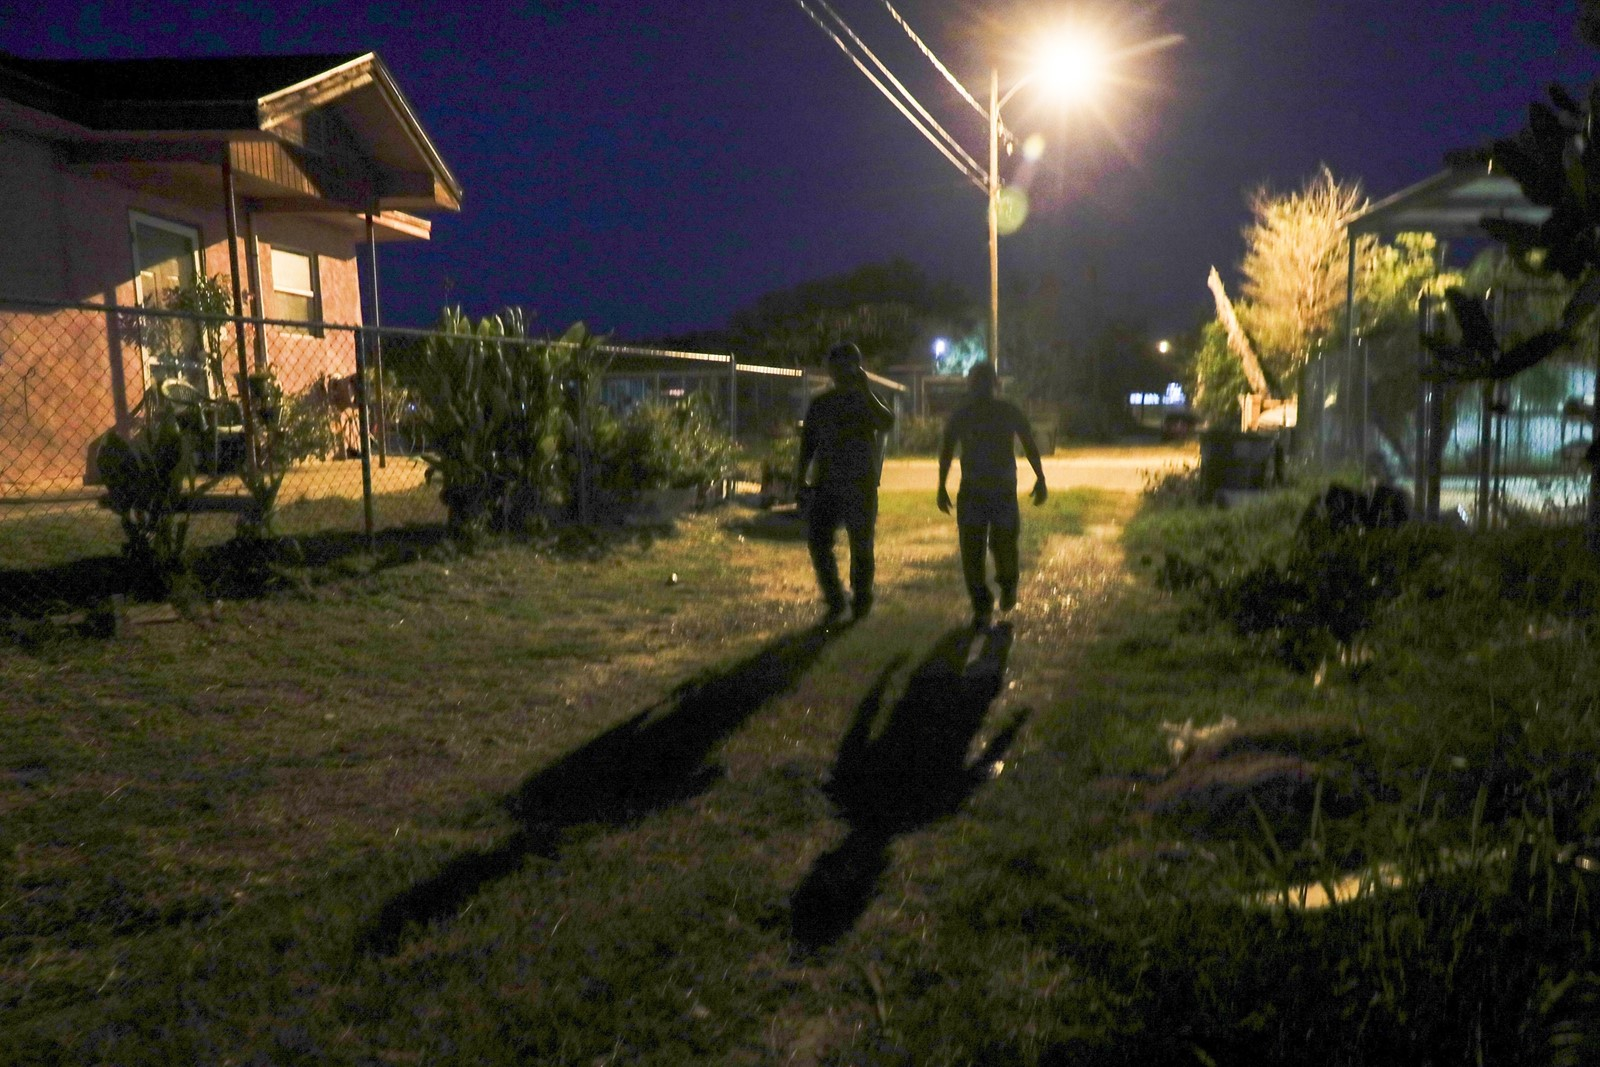 Immigrants look for a safe house in colonia De La Cruz, a riverfront neighborhood where strange figures pass at all hours. — Photograph: Robert Gauthier/Los Angeles Times.